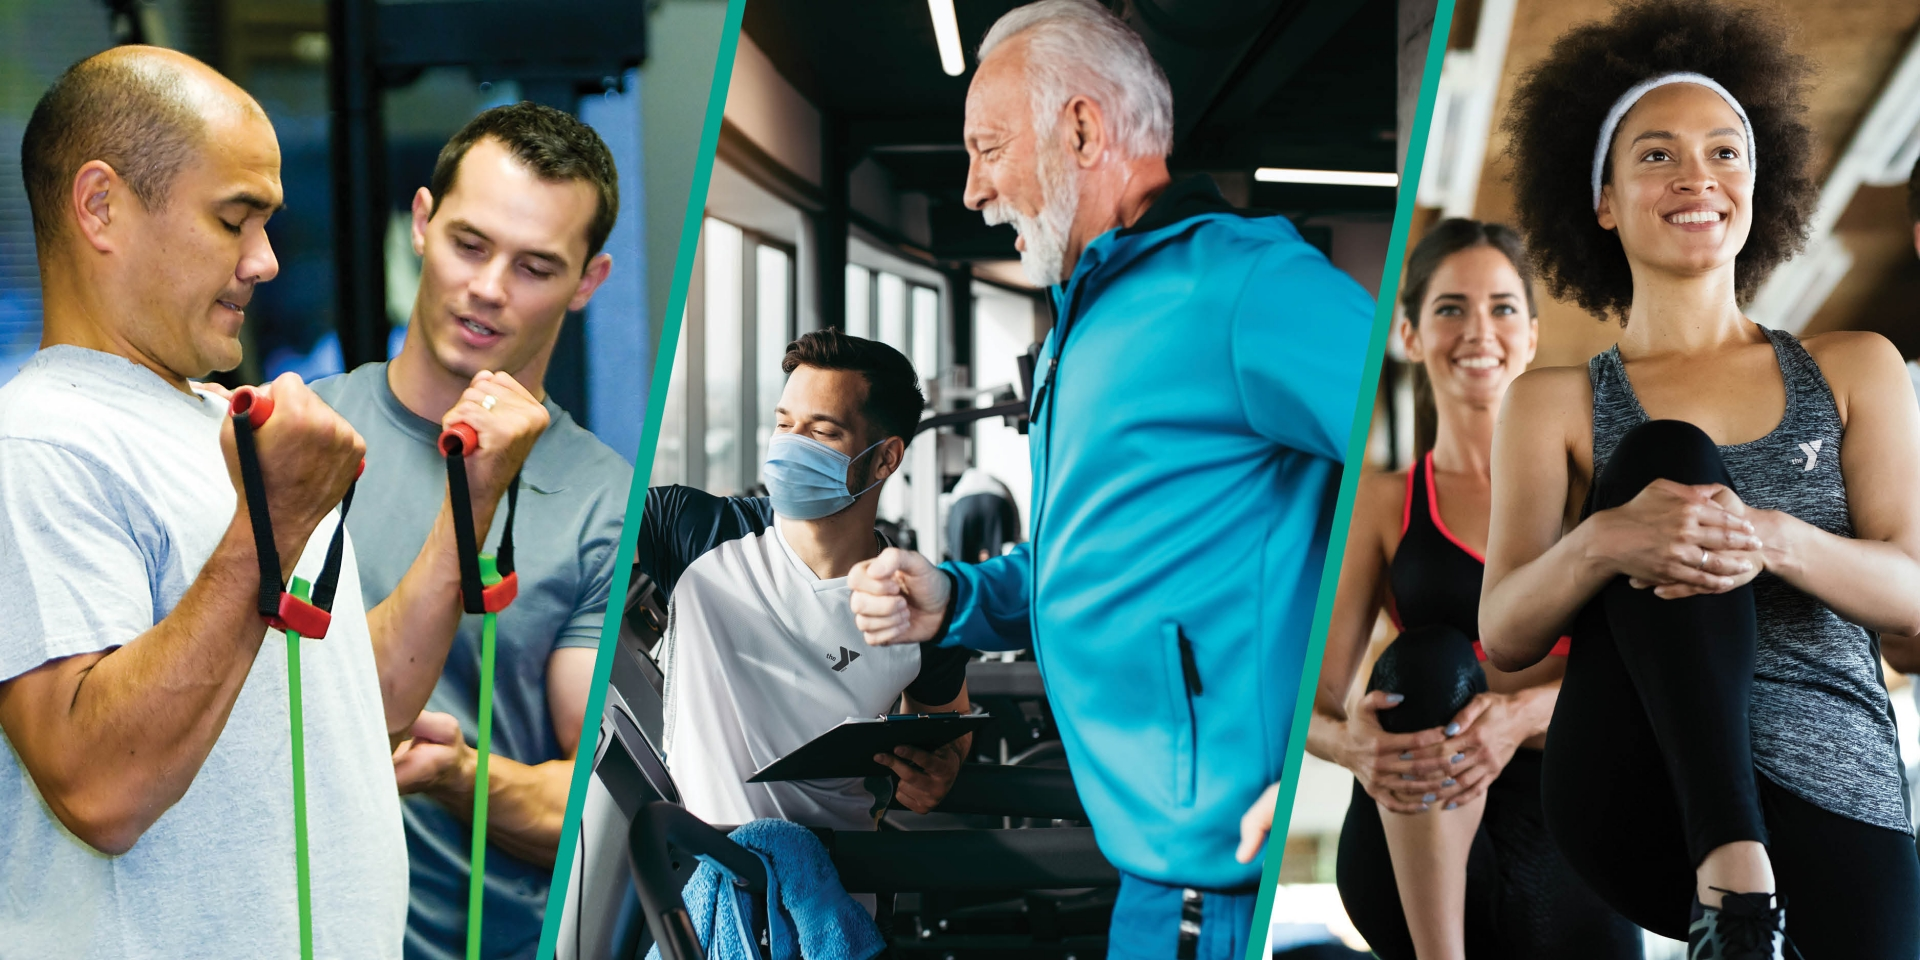 A trio of images representing personal training; a middle-aged man using bands to build biceps, a senior man running on the treadmill, and a pair of millenials stretching.